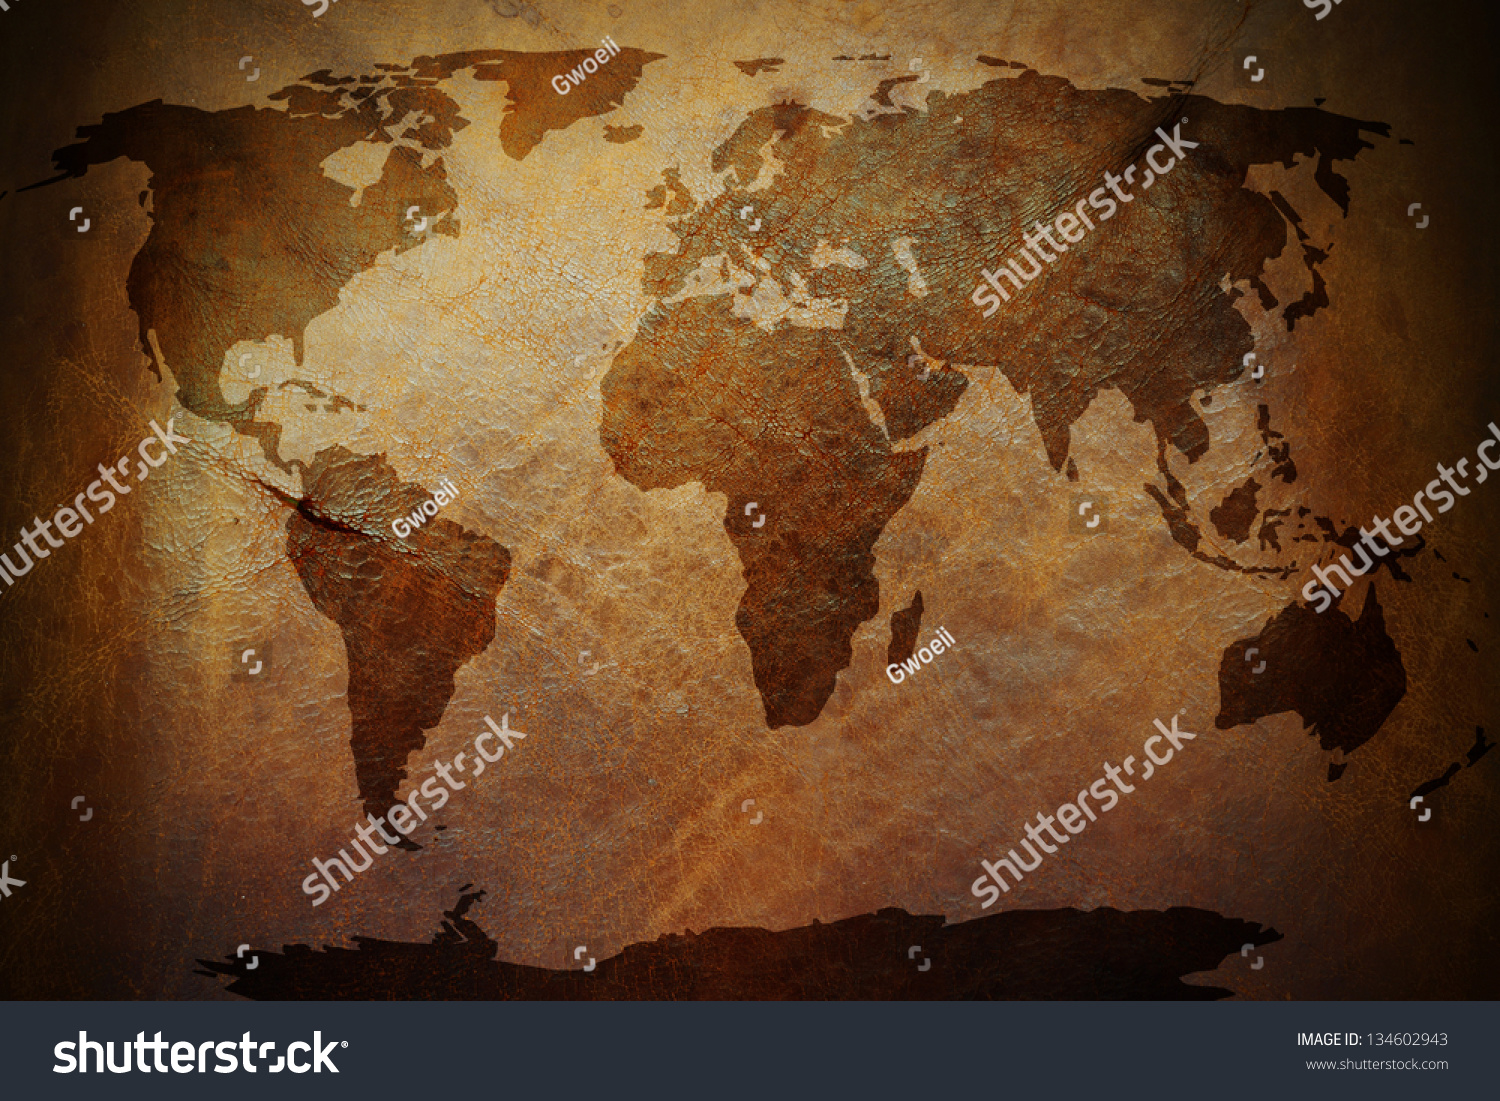 World map print on old vintage stock photo edit now shutterstock a world map print on an old vintage brown leather parchment gumiabroncs Images